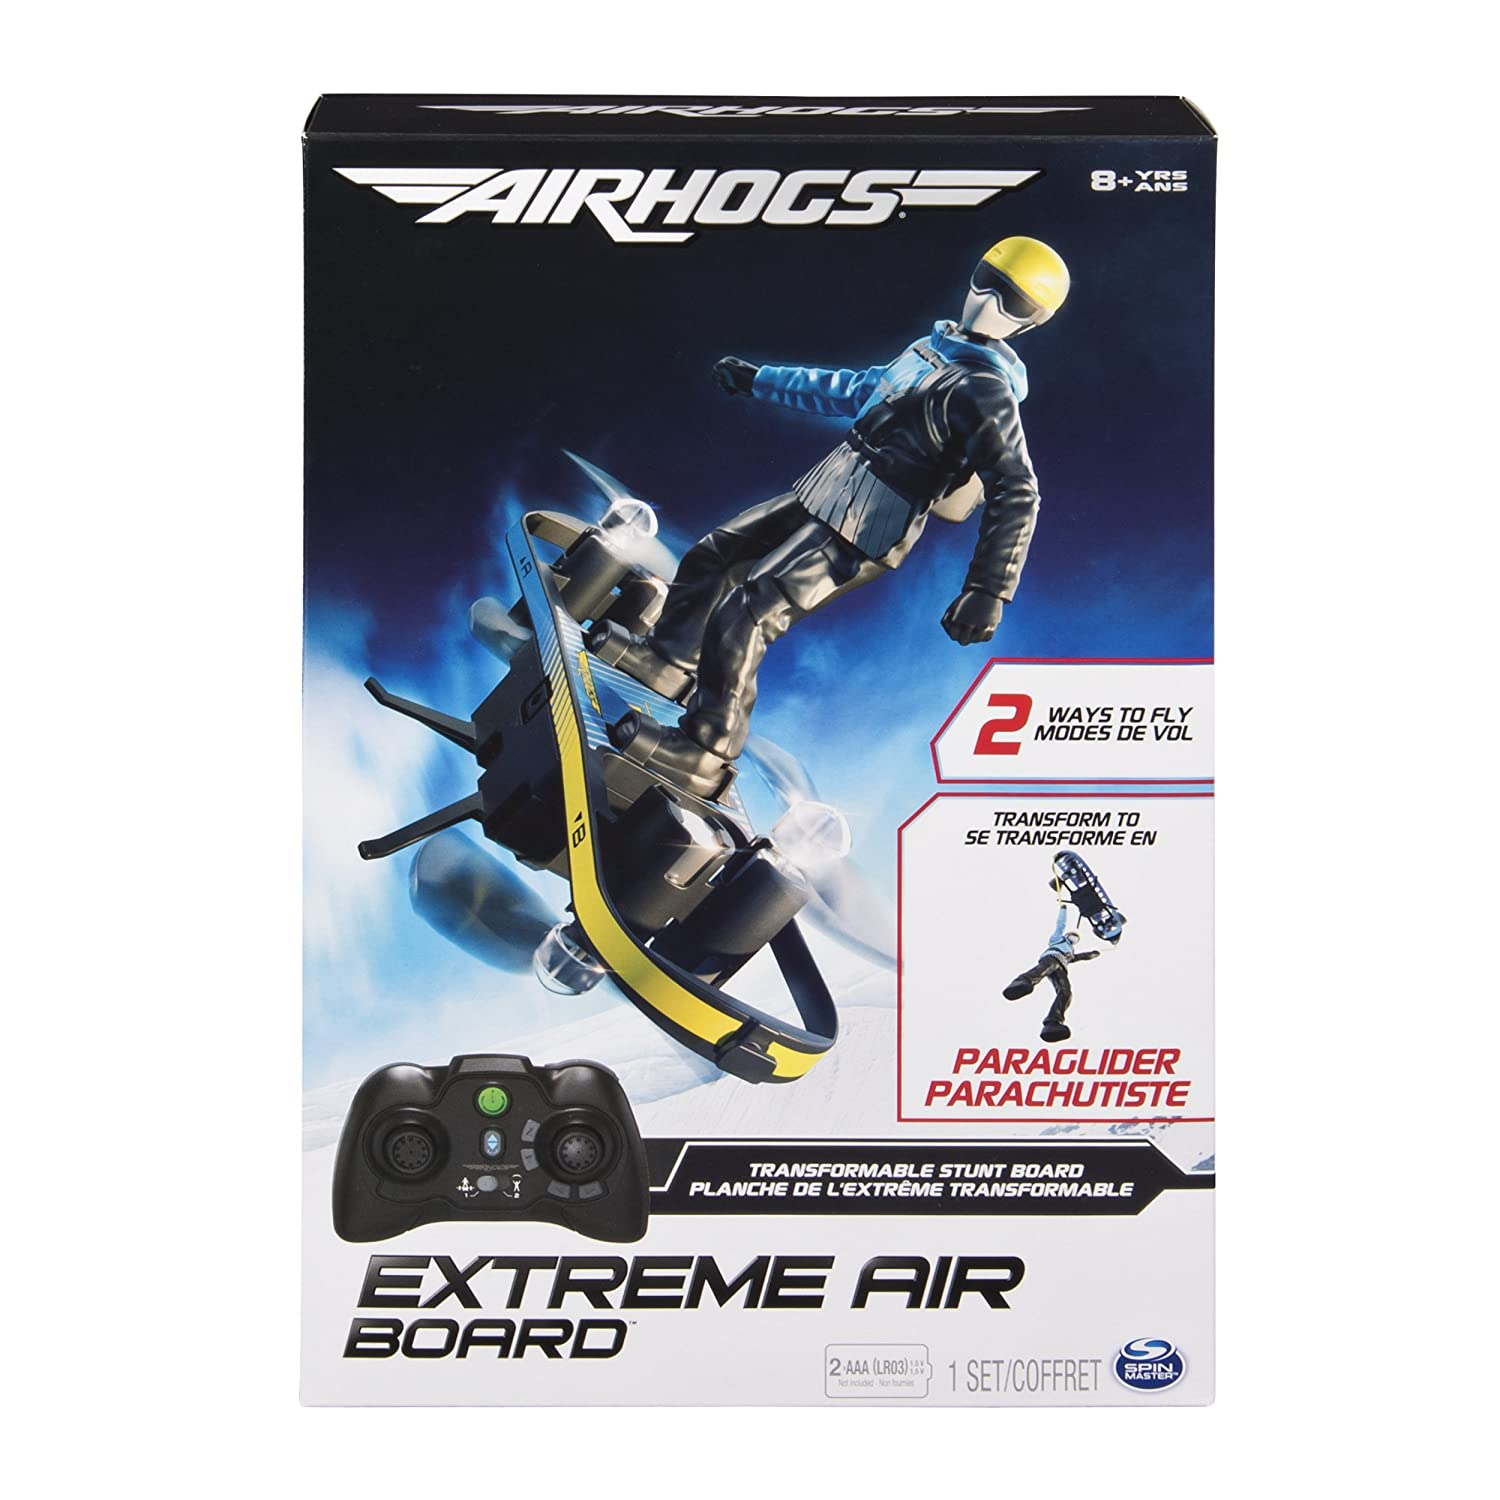 Air Hogs Extreme Air Board: Amazon.es: Juguetes y juegos